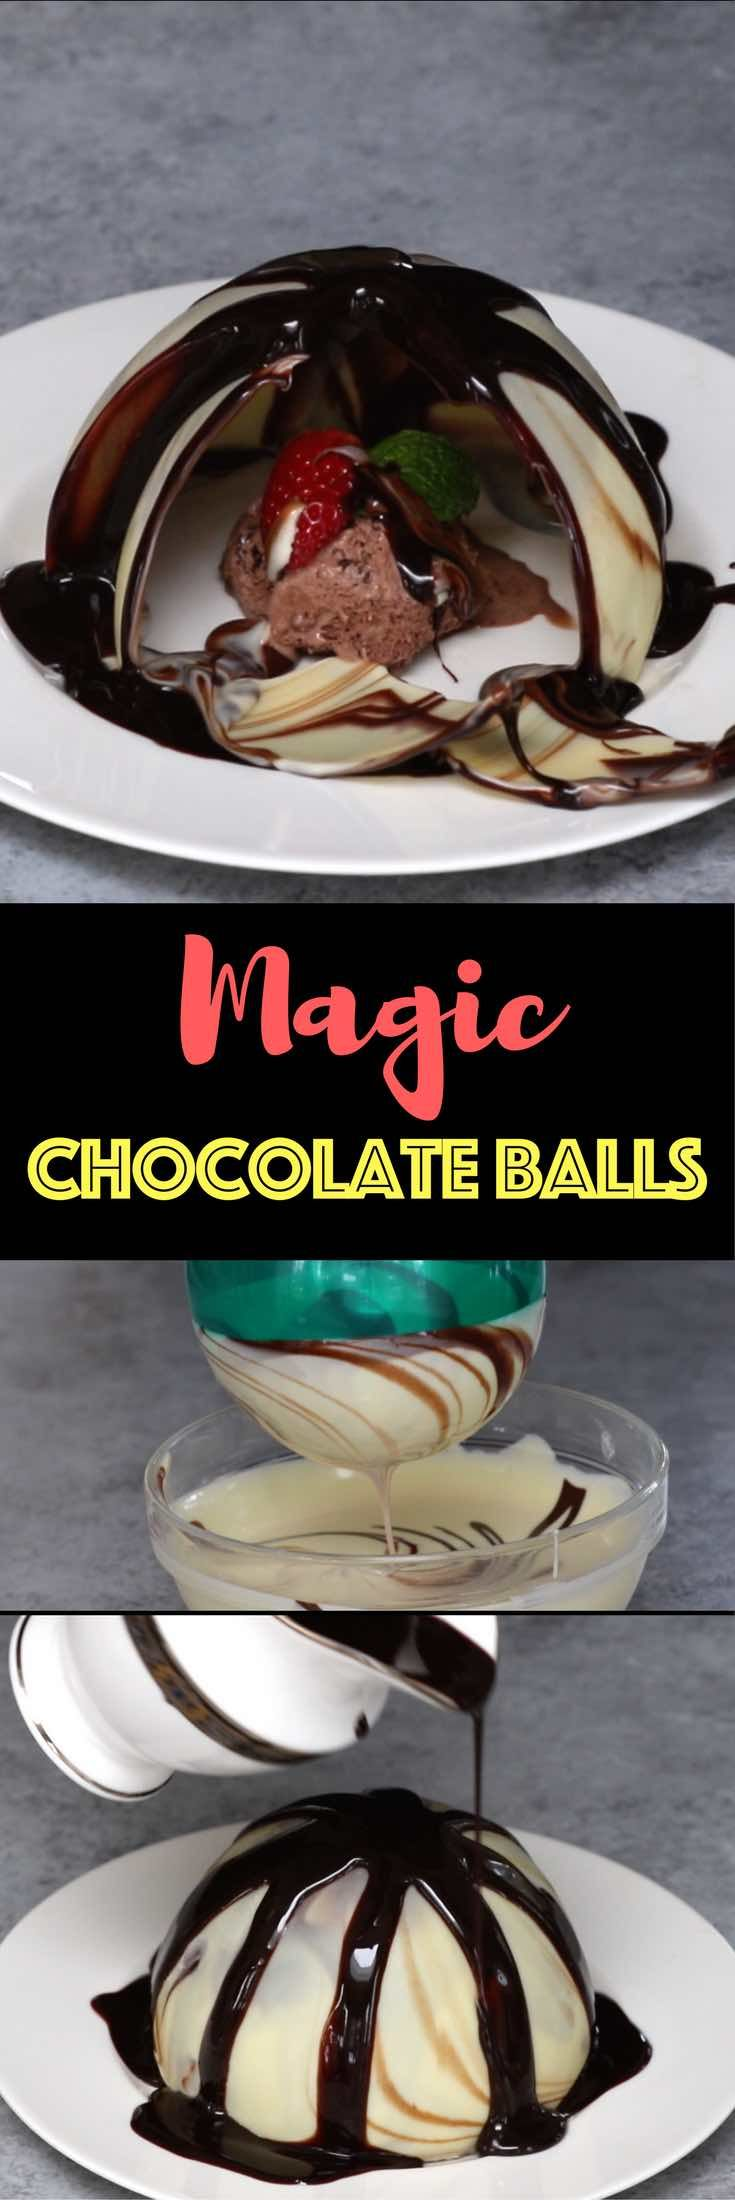 Magic Chocolate Balls – An easy and beautiful magic recipe that looks like flowers blooming. When the hot chocolate poured over the swirl chocolate shells, they melt and collapse revealing the dessert inside. Special trick using balloons make it really easy to shape the chocolate into balls. So cool! Quick and easy recipe, no bake dessert, mother's day recipe, holiday party video recipe. | Tipbuzz.com